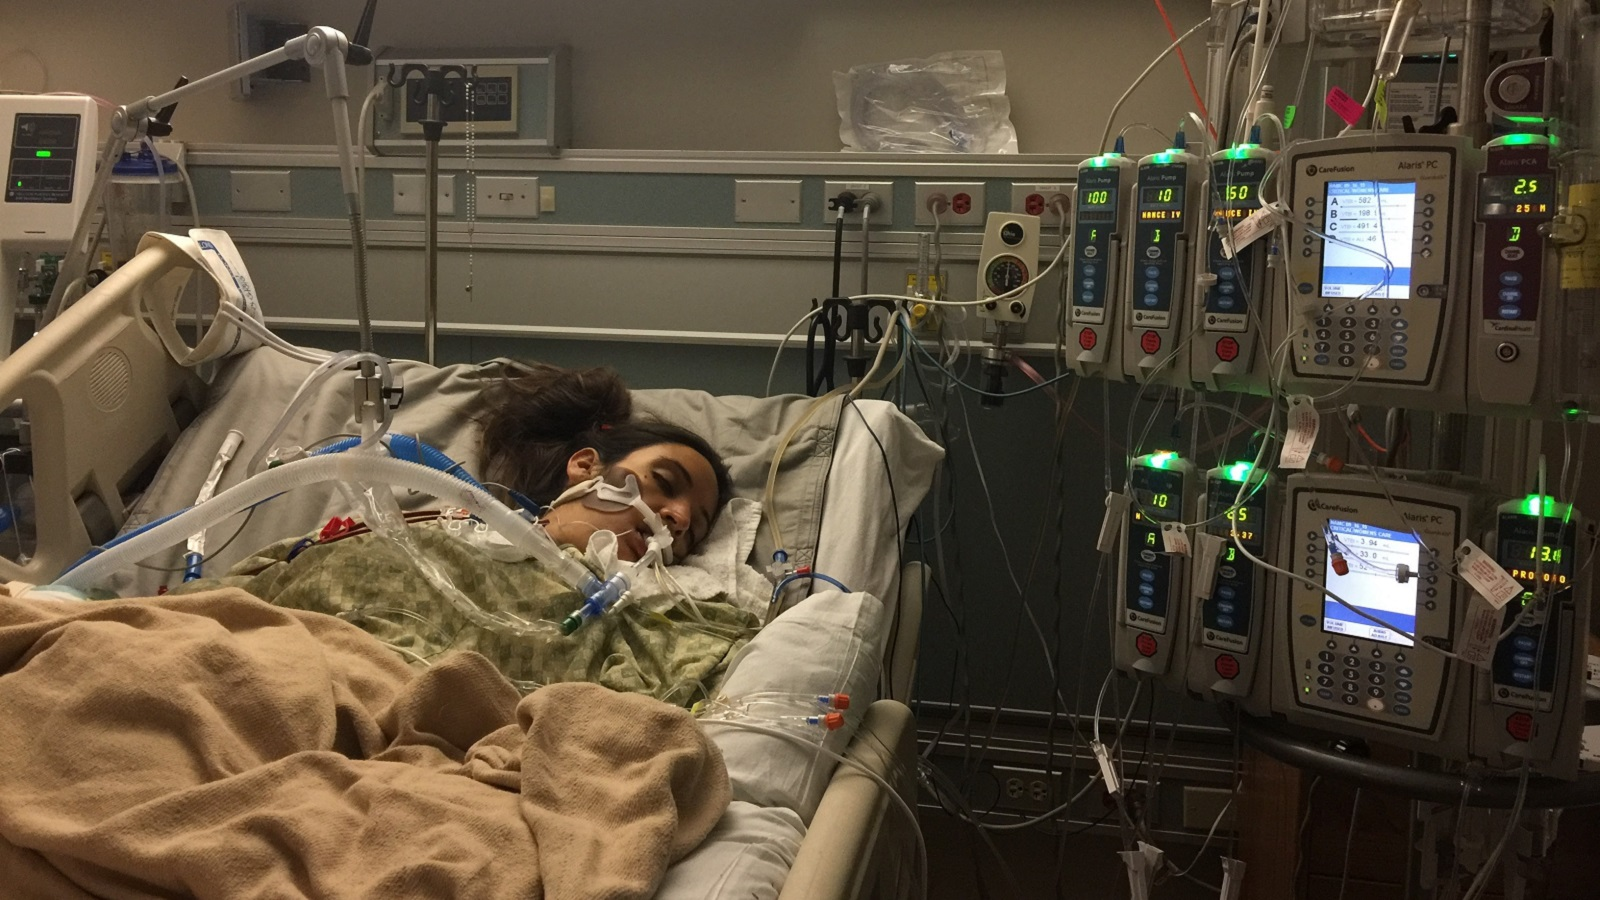 Leah Bahrencu hospitalized - mothers erased